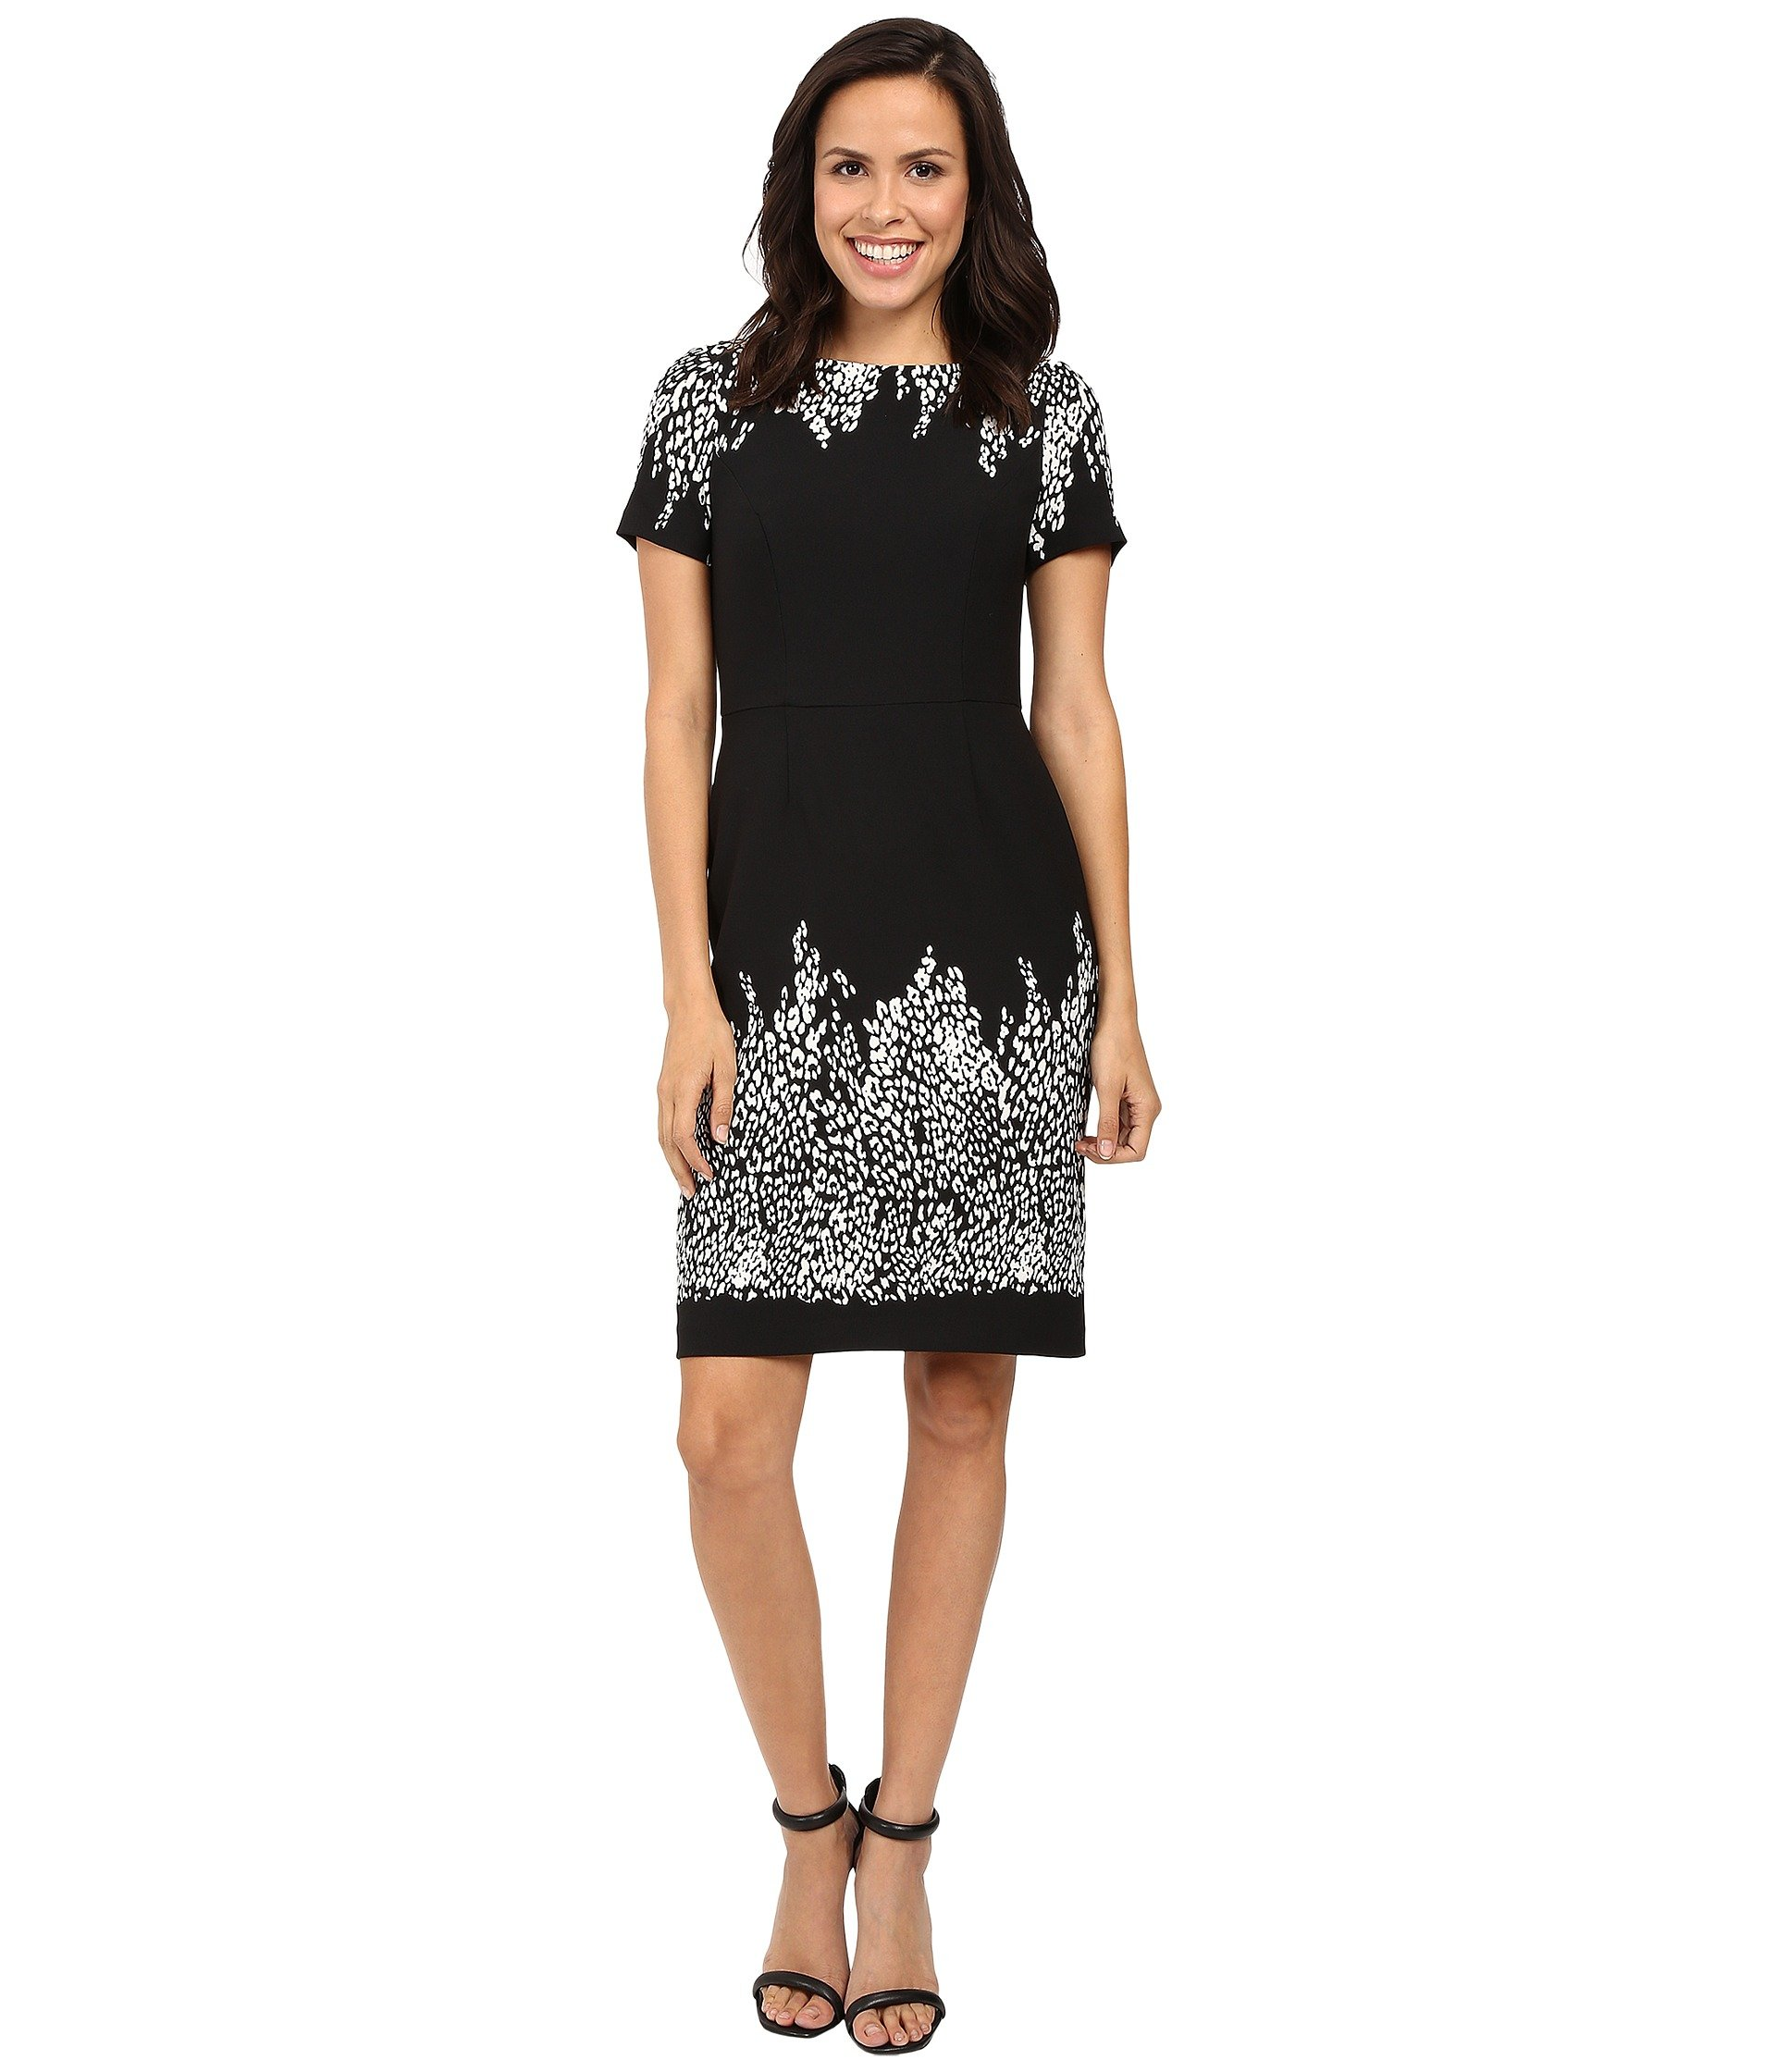 Vestido para Mujer Adrianna Papell Animal and Lace Printed Blocked Sheath Dress  + Adrianna Papell en VeoyCompro.net